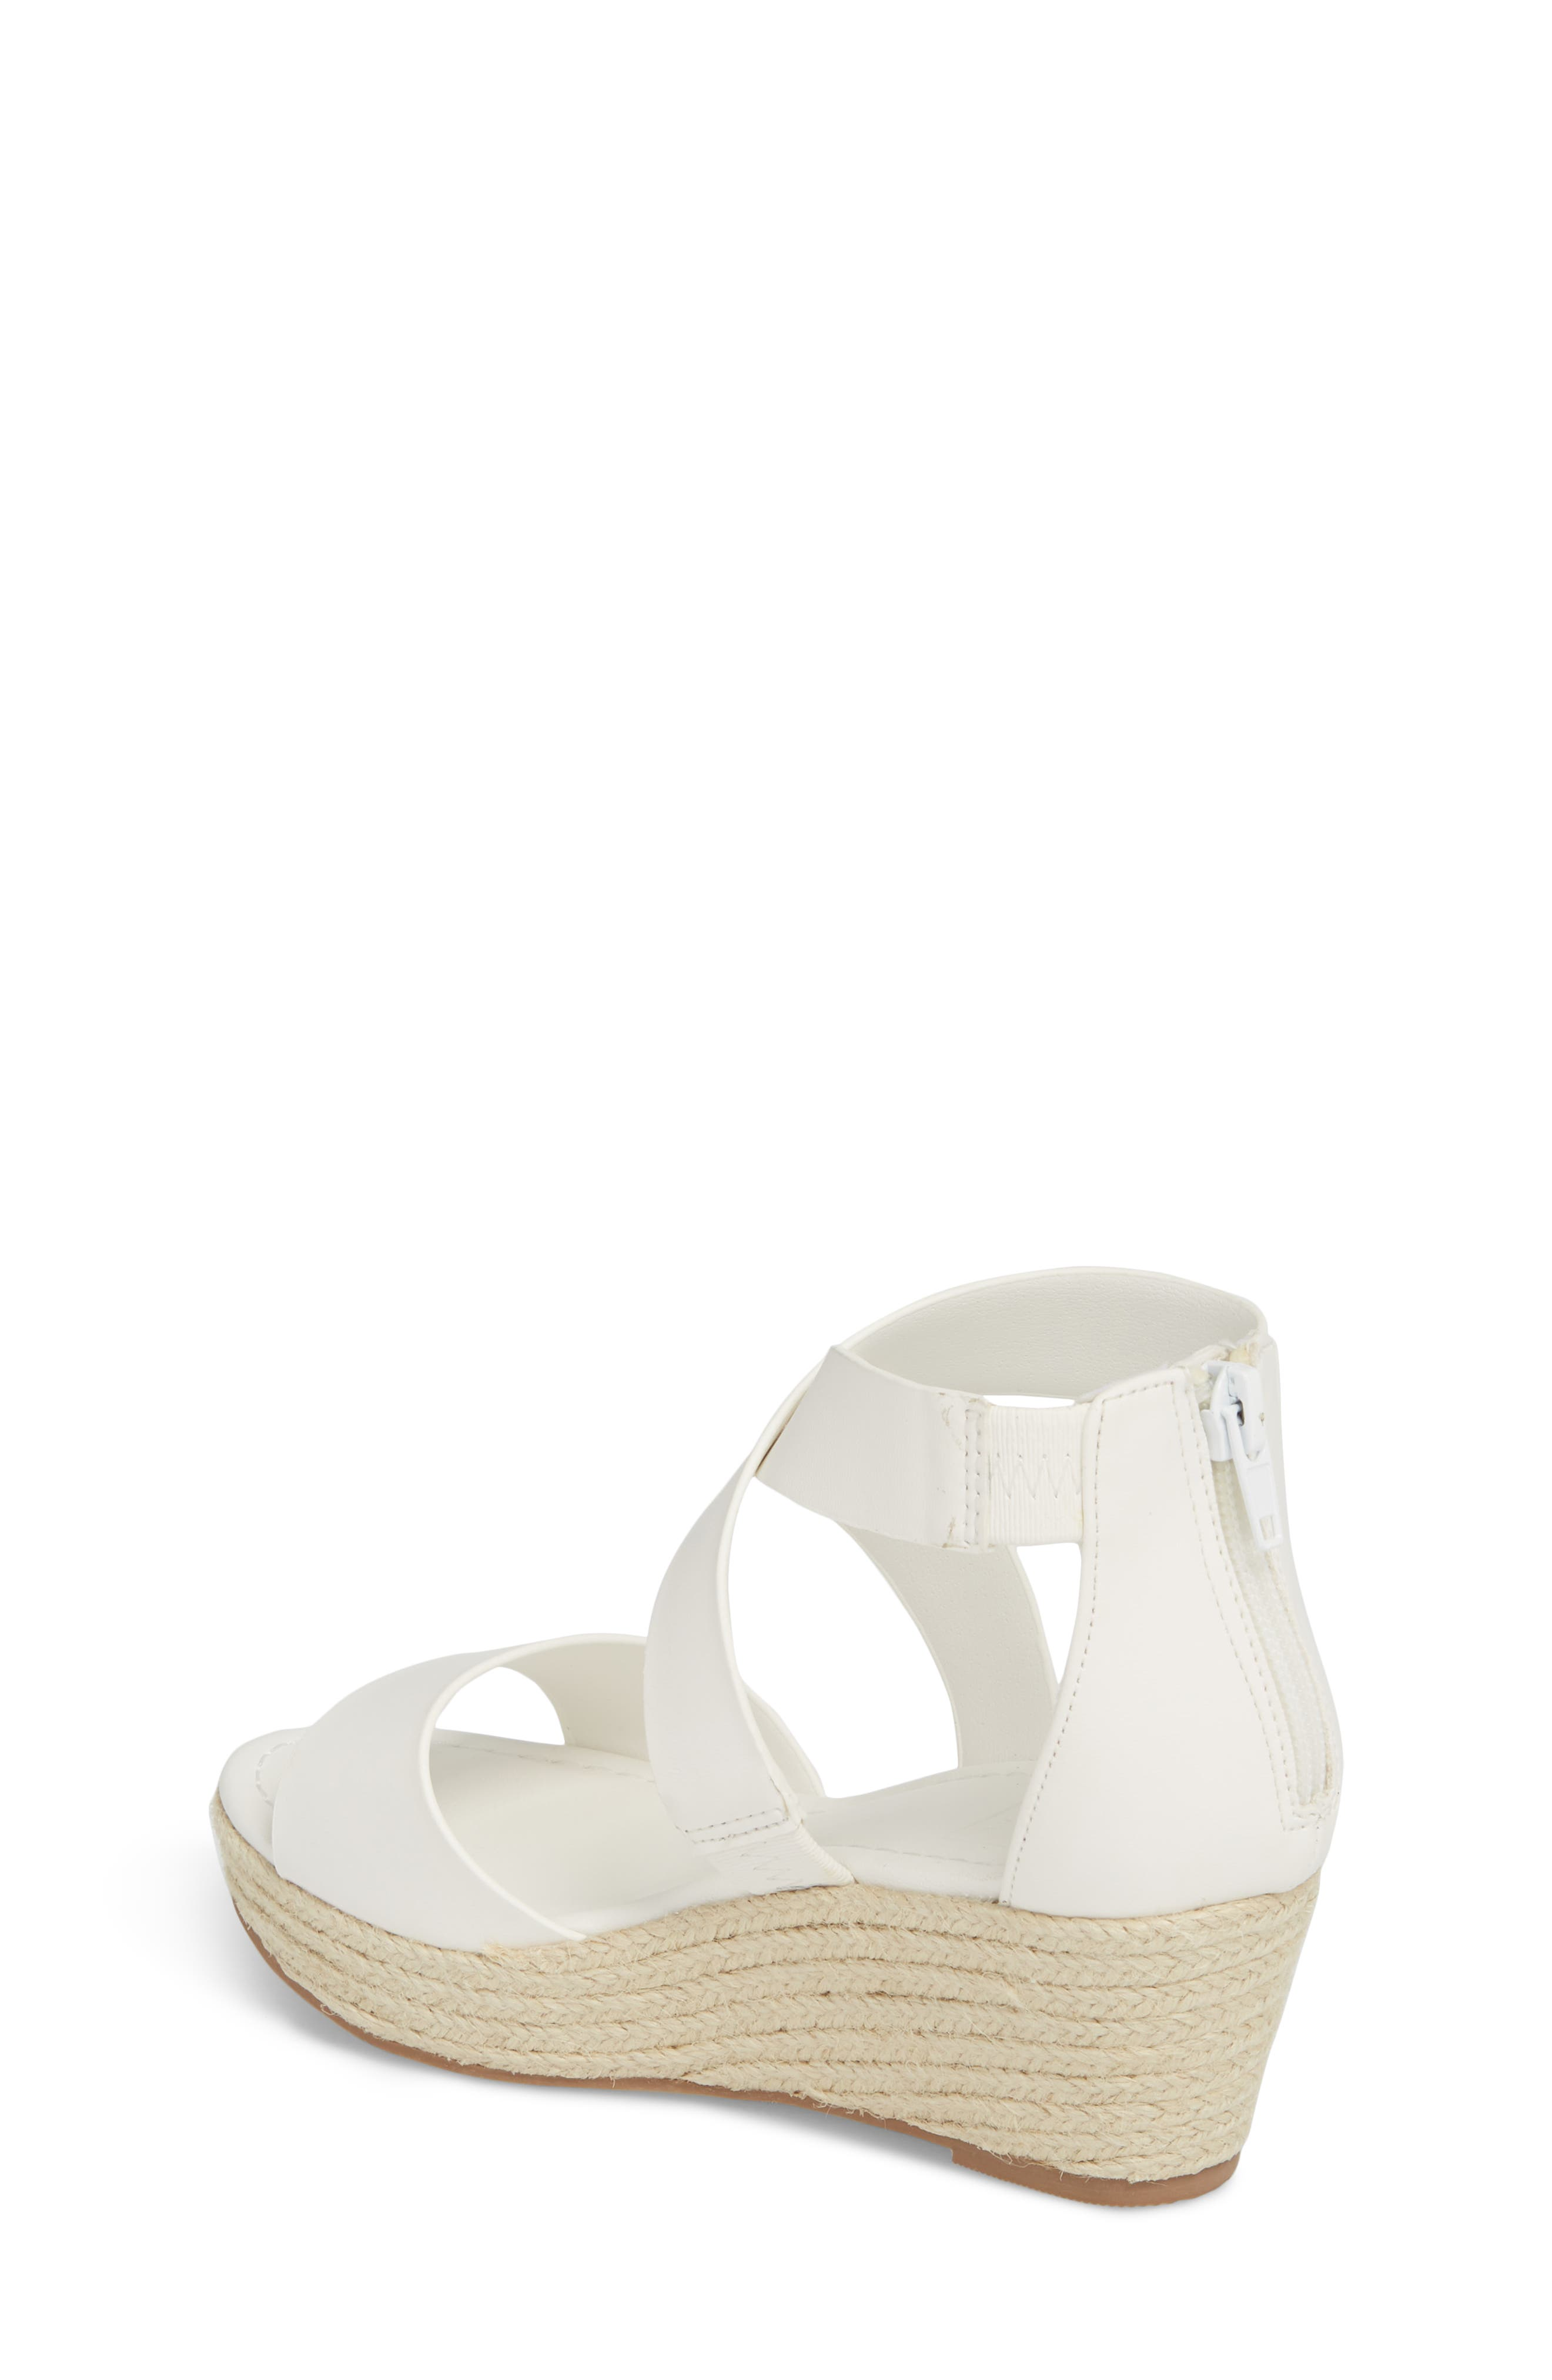 DOLCE VITA,                             Wilma Platform Wedge Sandal,                             Alternate thumbnail 2, color,                             100